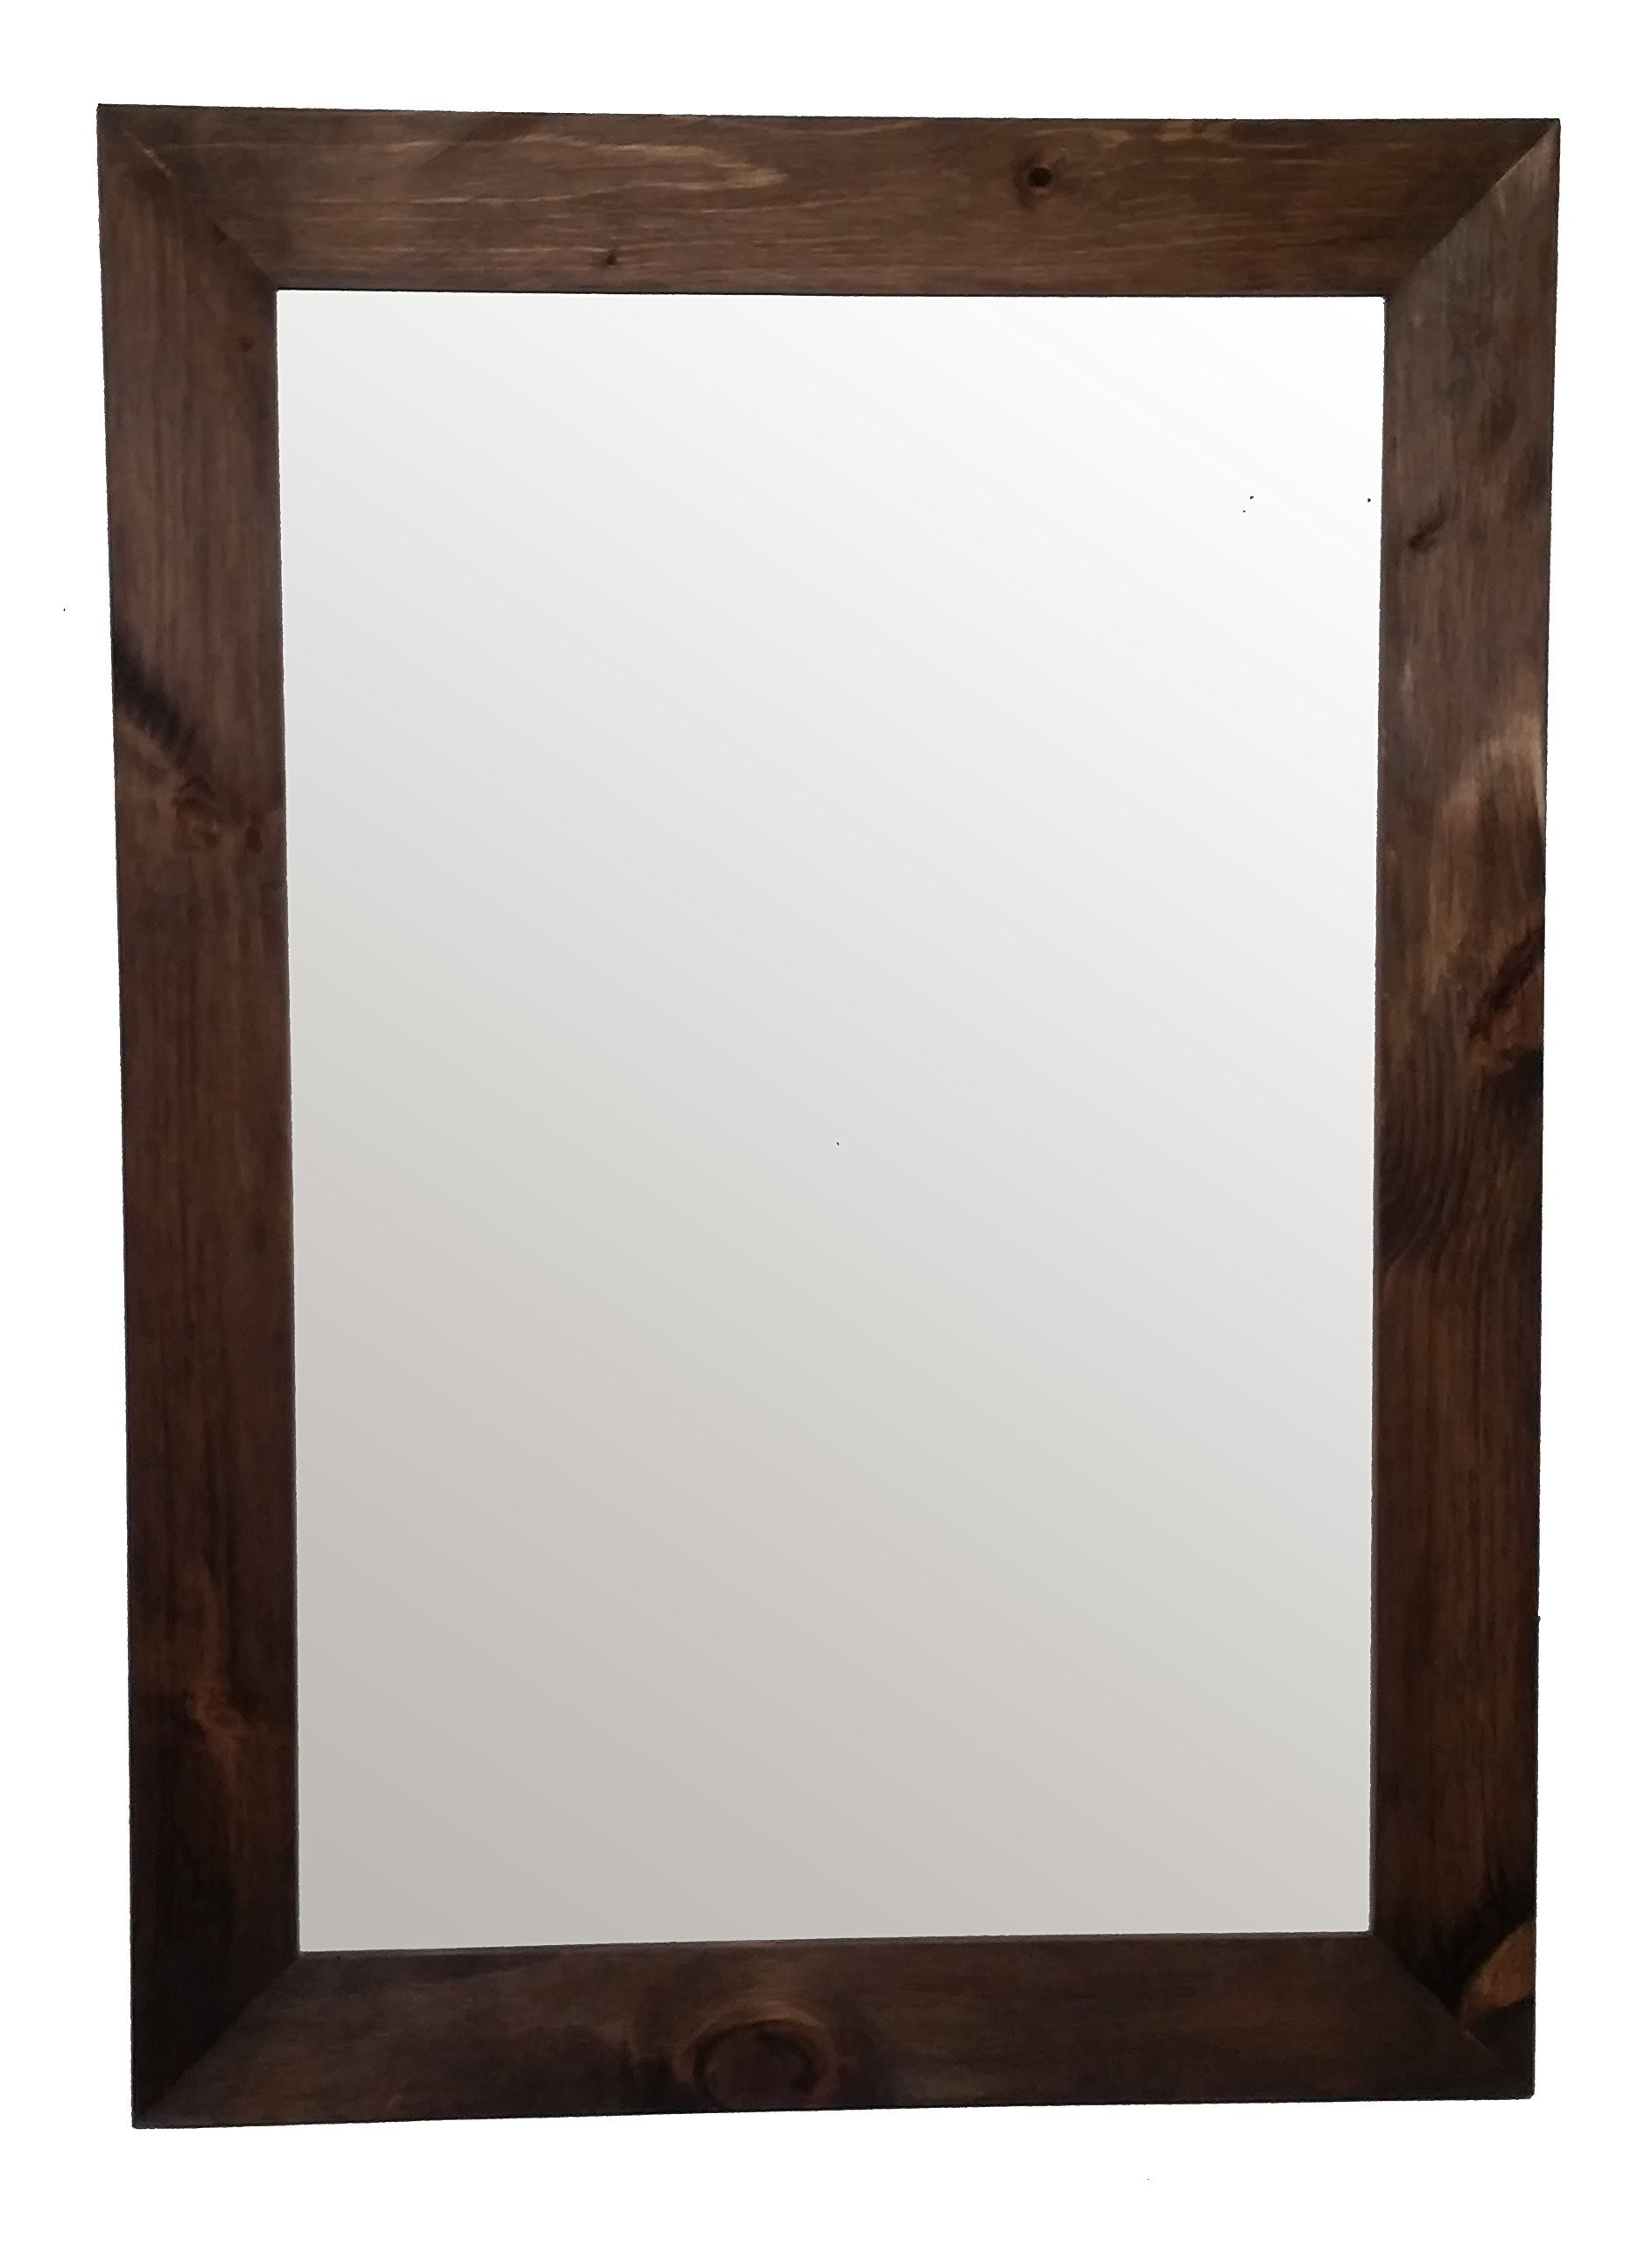 Shiplap Mirror 30 x 42 Vertical Provincial Stain Reclaimed Wood Mirror - Large Wall Mirror - Rustic Modern Home - Home Decor - Mirror - Housewares - Woodwork - Frame by Renewed Decor